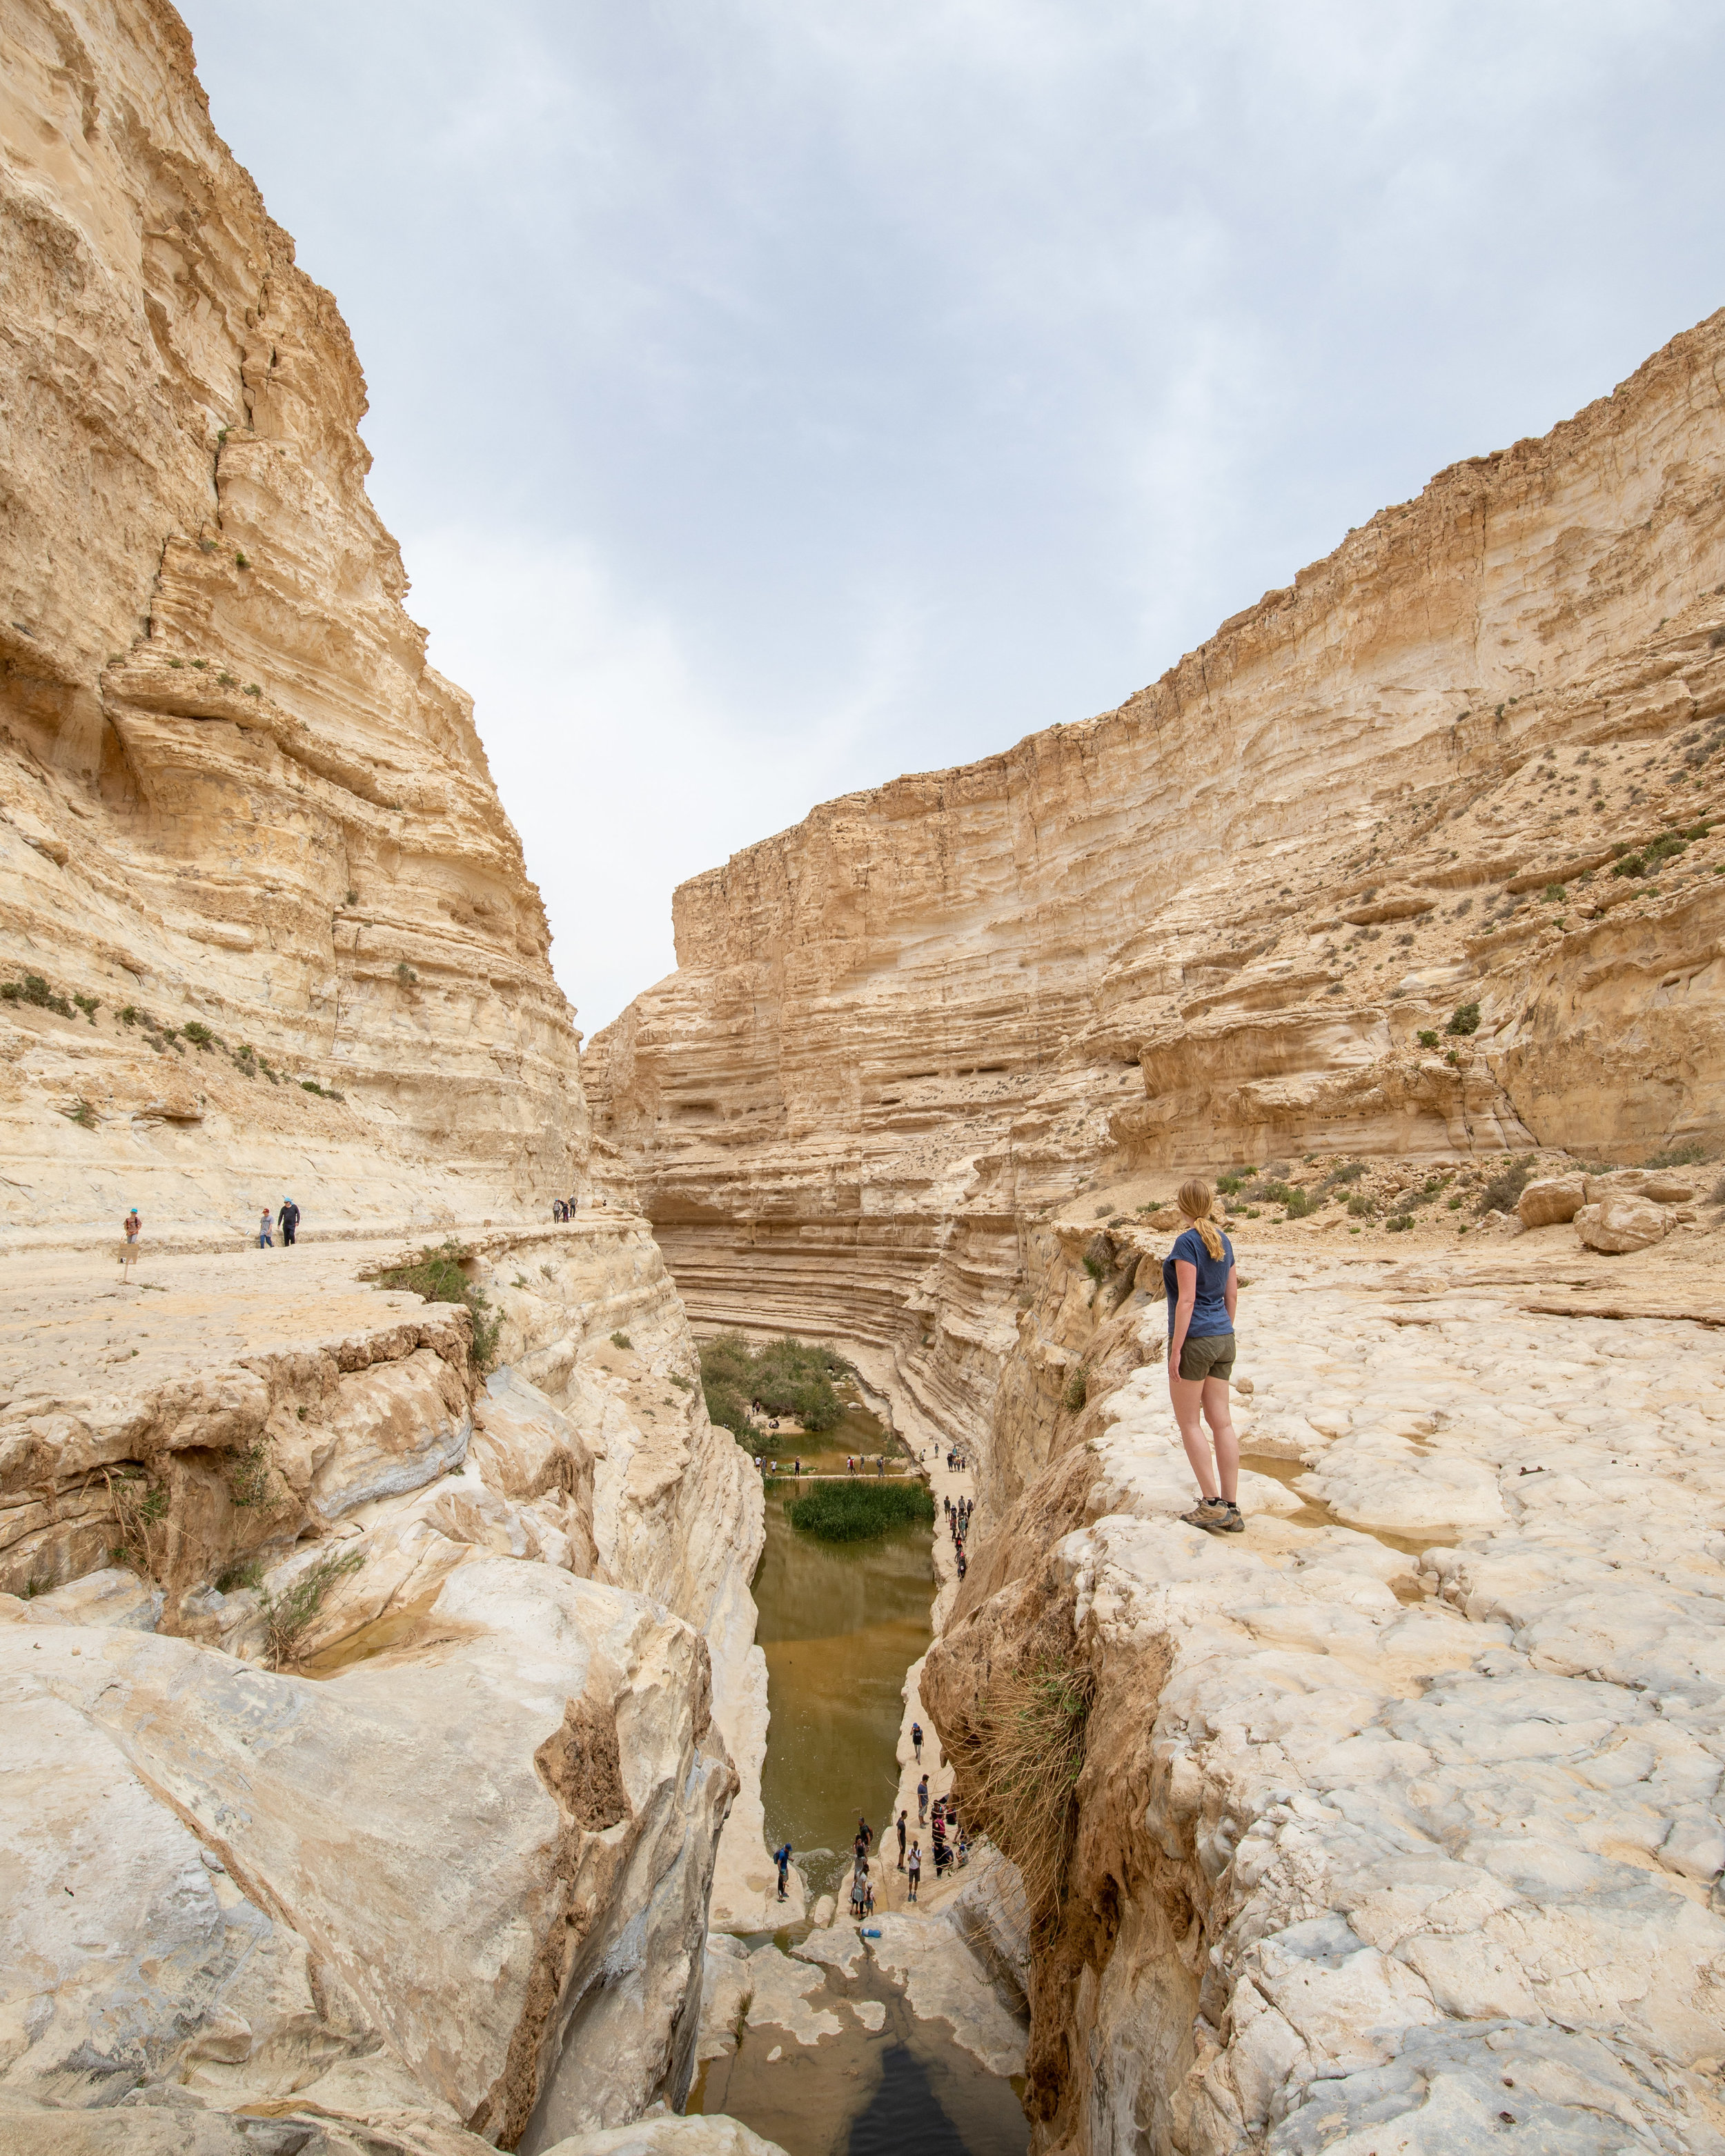 The canyon at Ein Avdat National Park